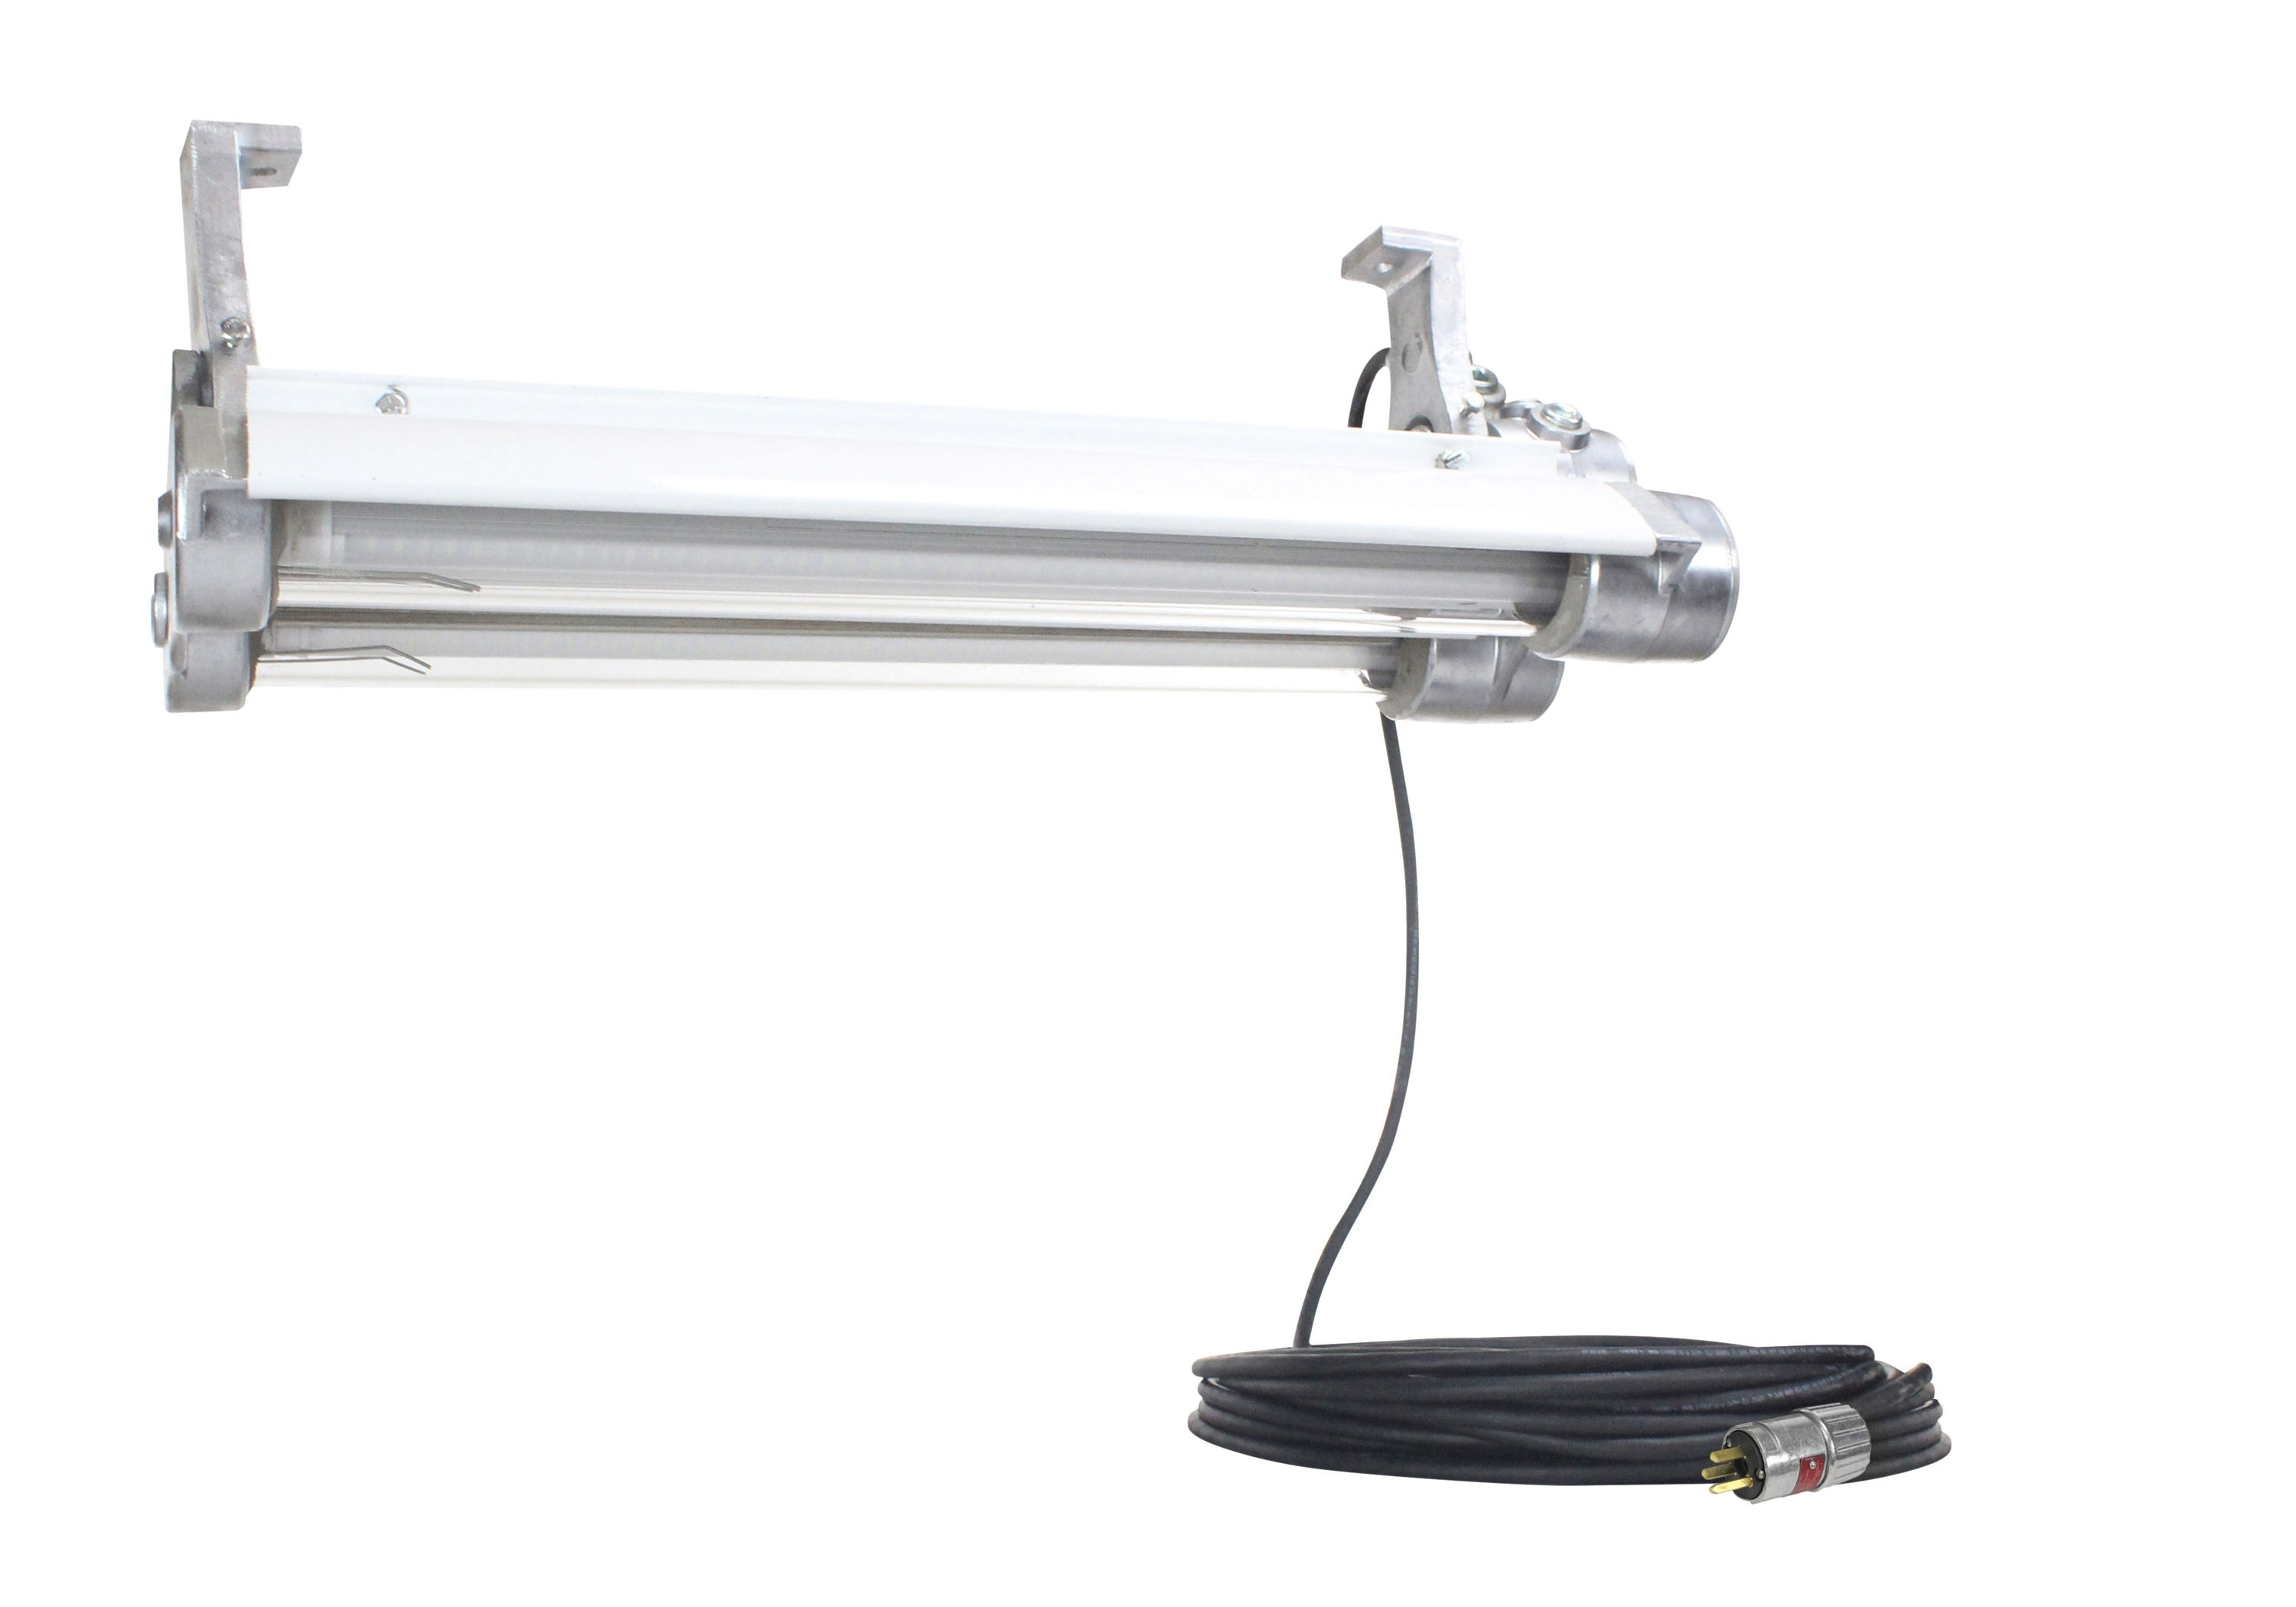 Larson Electronics Releases An Explosion Proof Uv Light With 15 Cord And Explosion Proof Plug